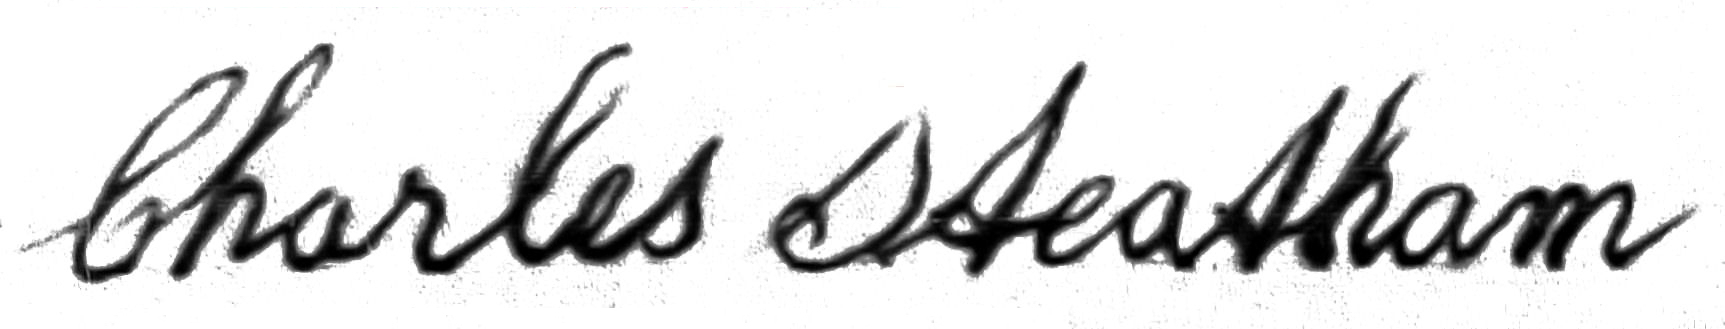 Photo of Charles Steatham's signature on his first marriage